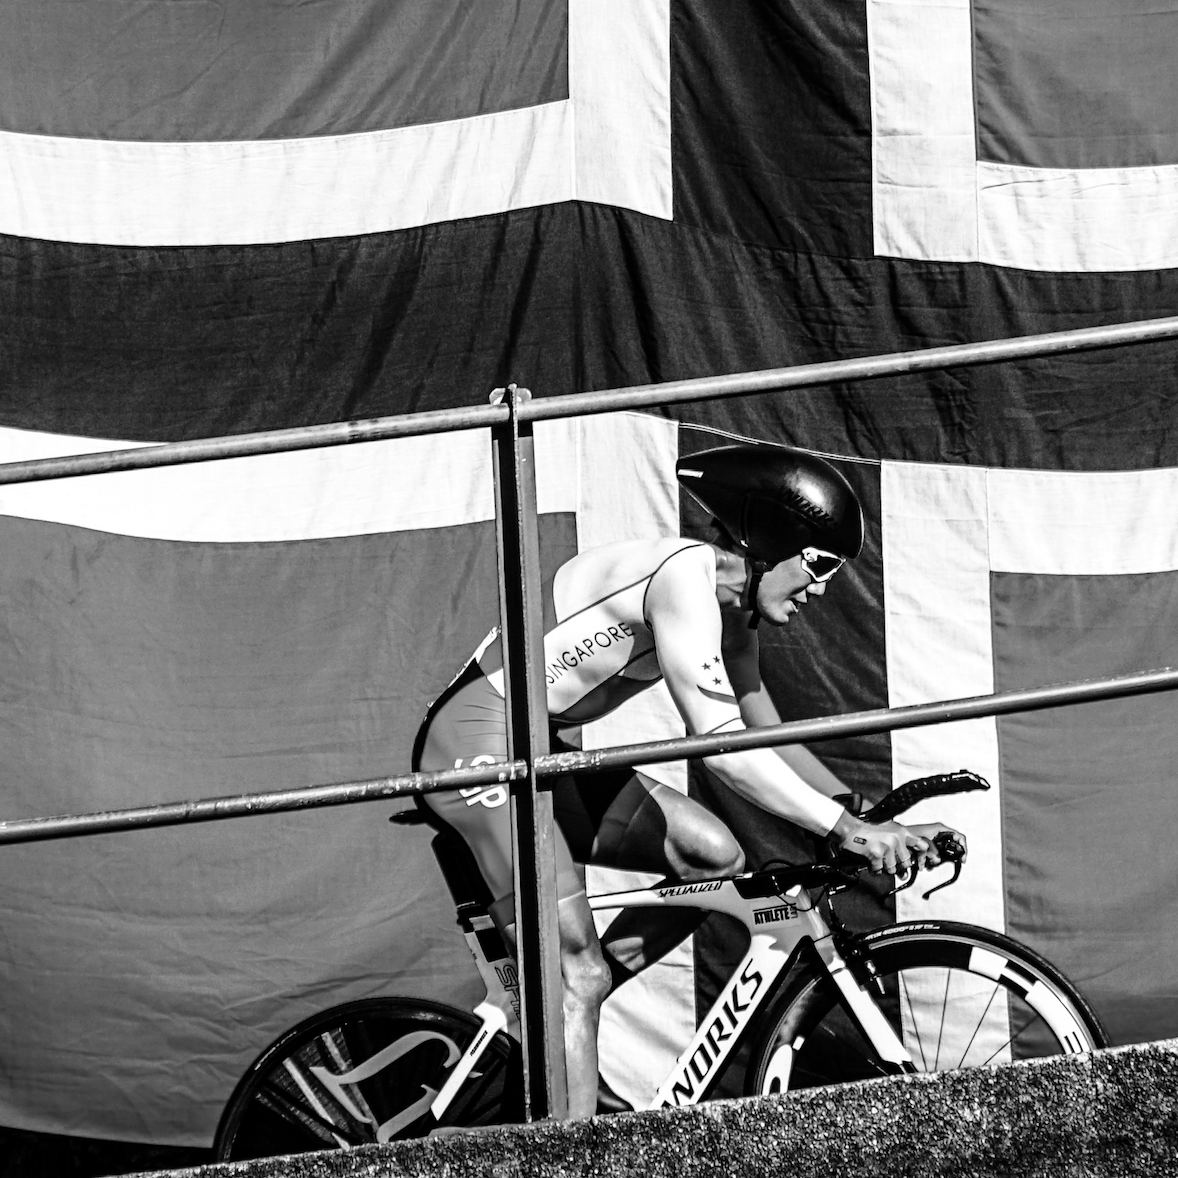 Yi-Peng riding in the UCI World Championships - Bergen, Norway in 2017